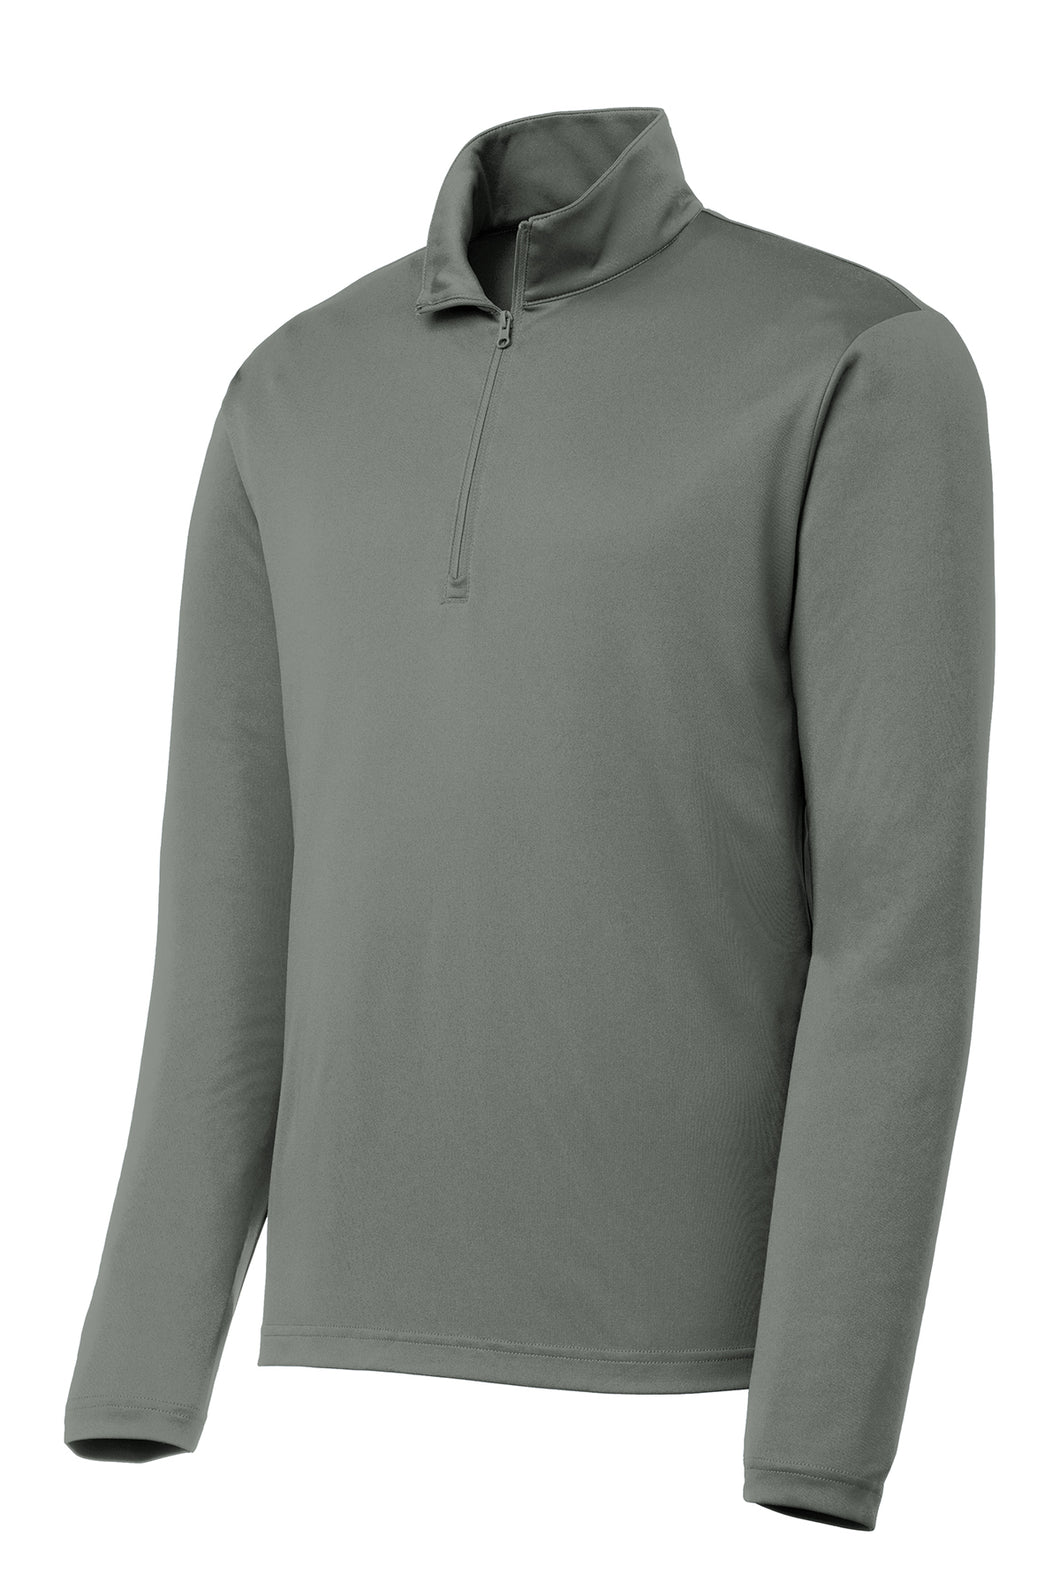 Quarter-zip Comfort Performance Pullover - Grey